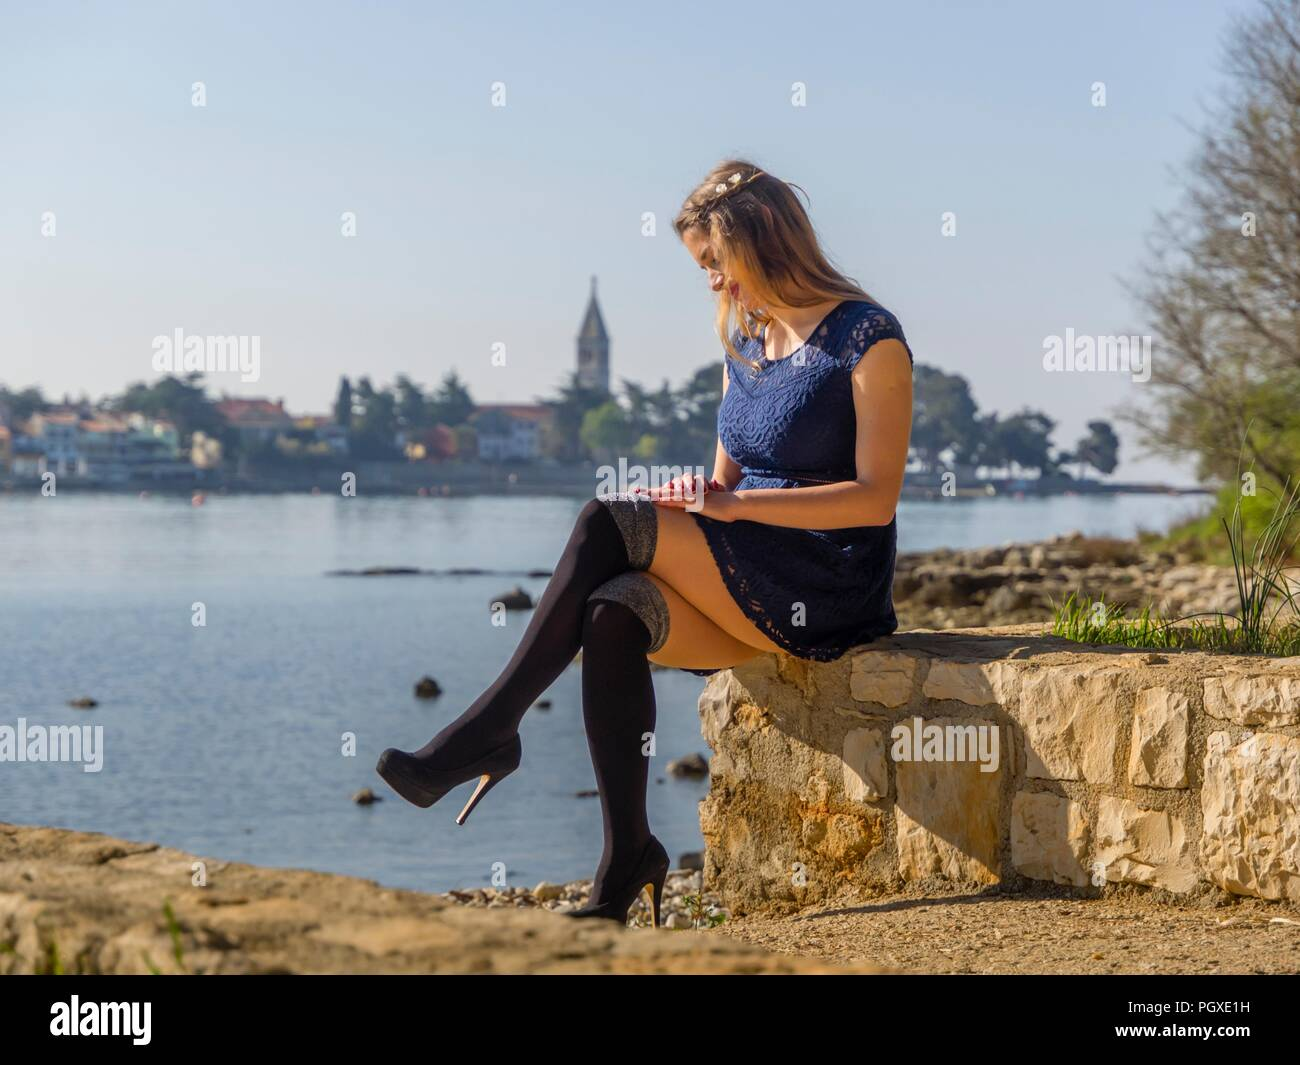 Sitting alone young woman blond hair wearing Black high heeled overknee boots - Stock Image